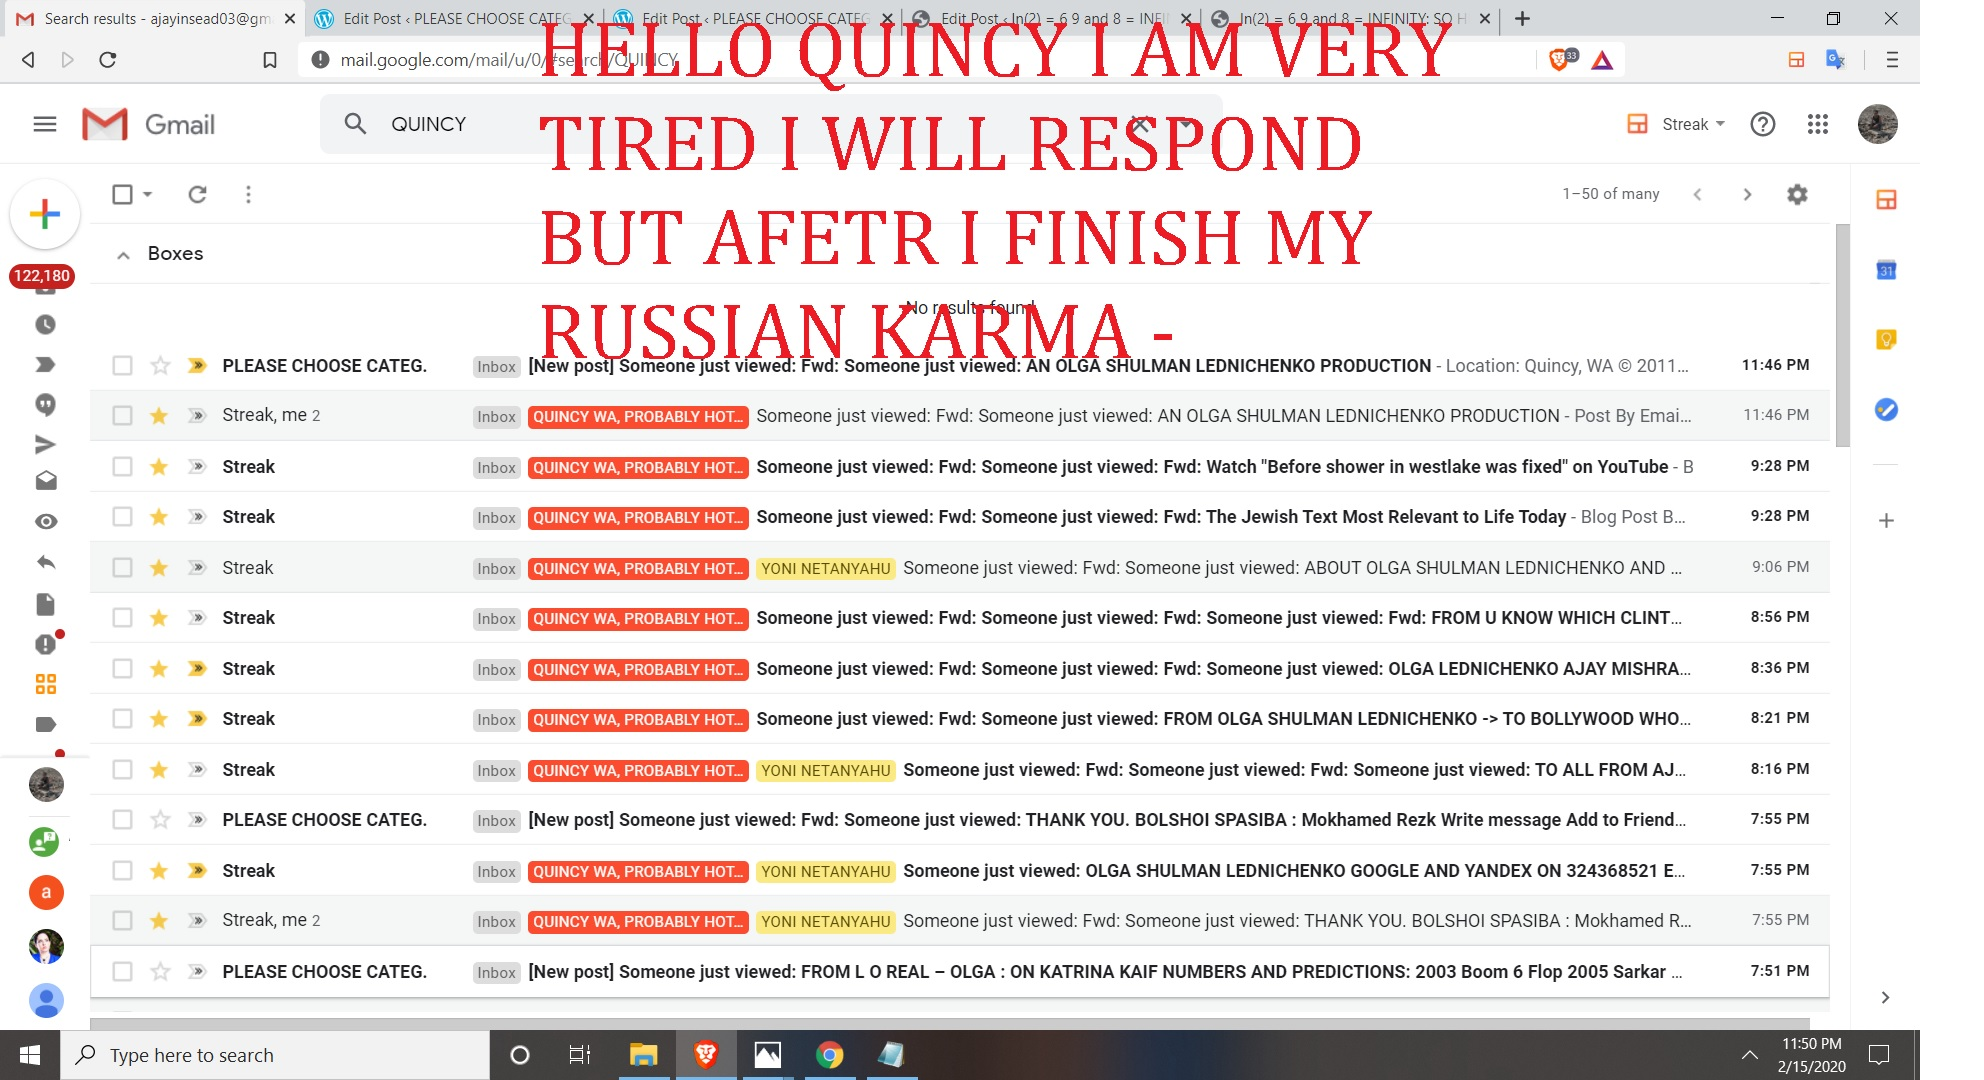 HELLO QUINCY I AM VERY TIRED I WILL RESPOND BUT AFETR I FINISH MY RUSSIAN KARMA -